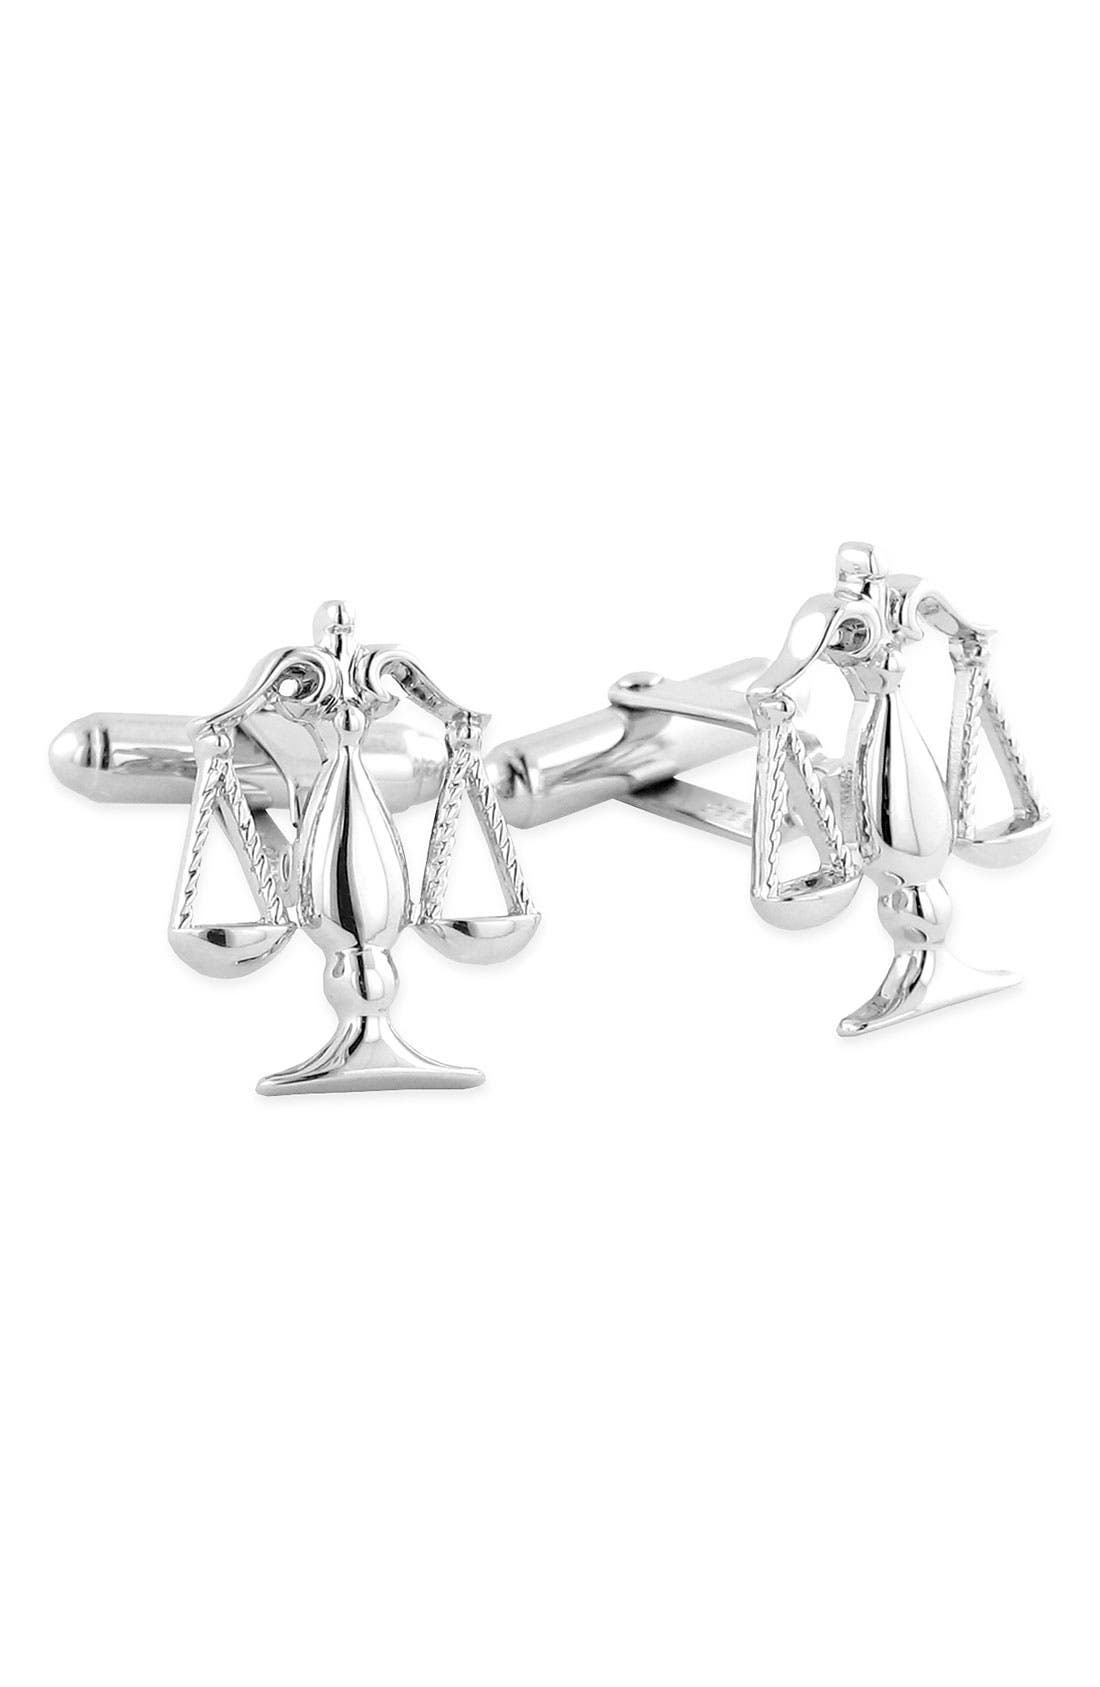 Alternate Image 1 Selected - David Donahue 'Scales of Justice' Cuff Links